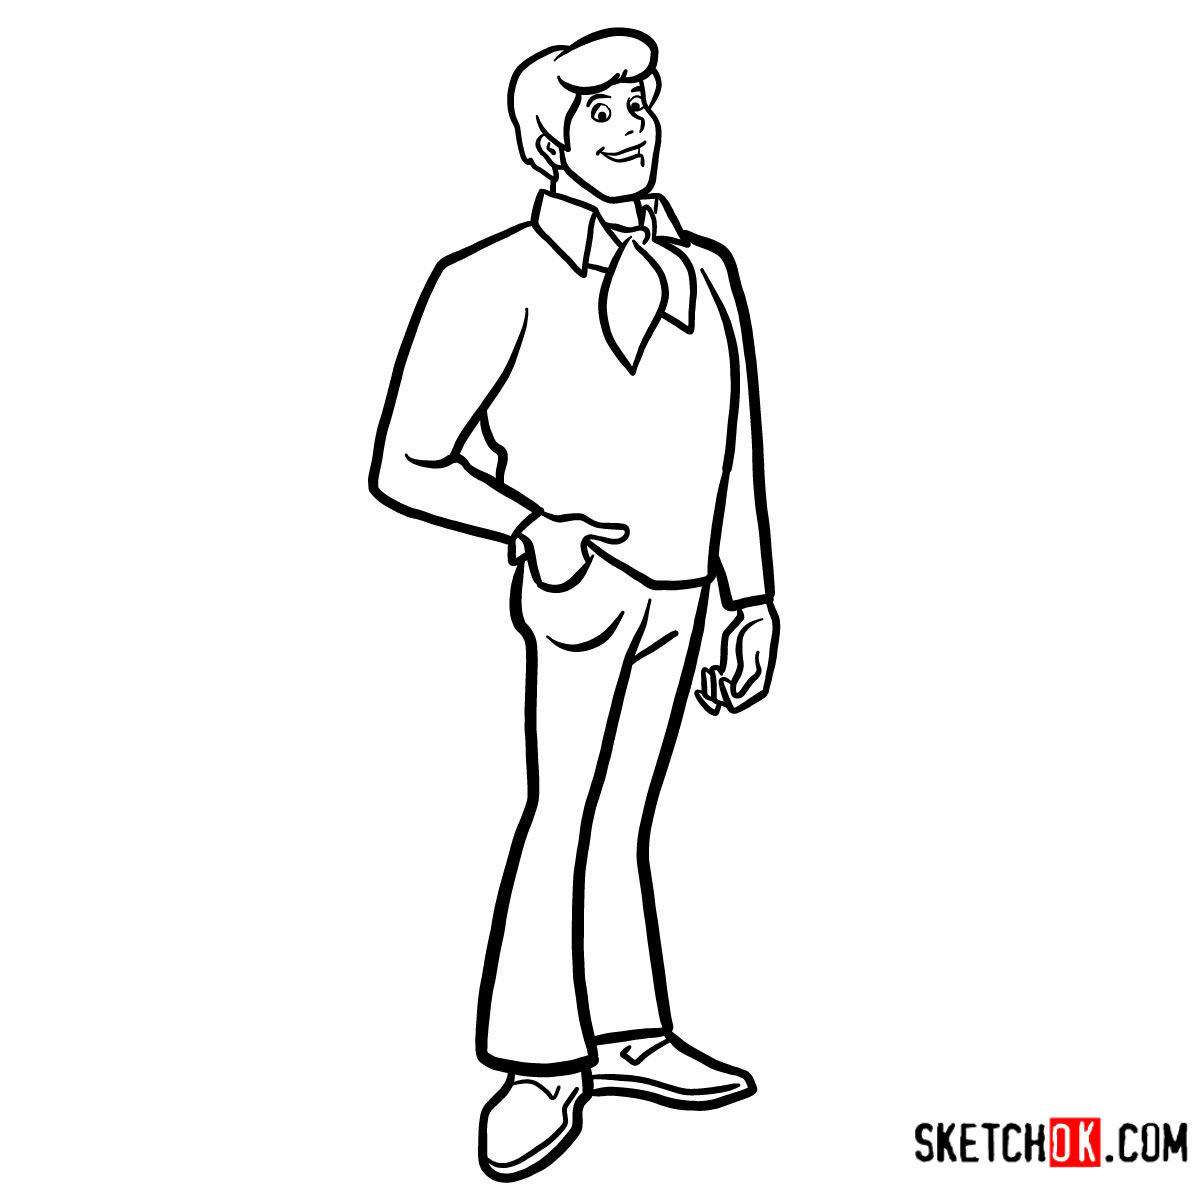 How to draw Fred Jones | Scooby Doo